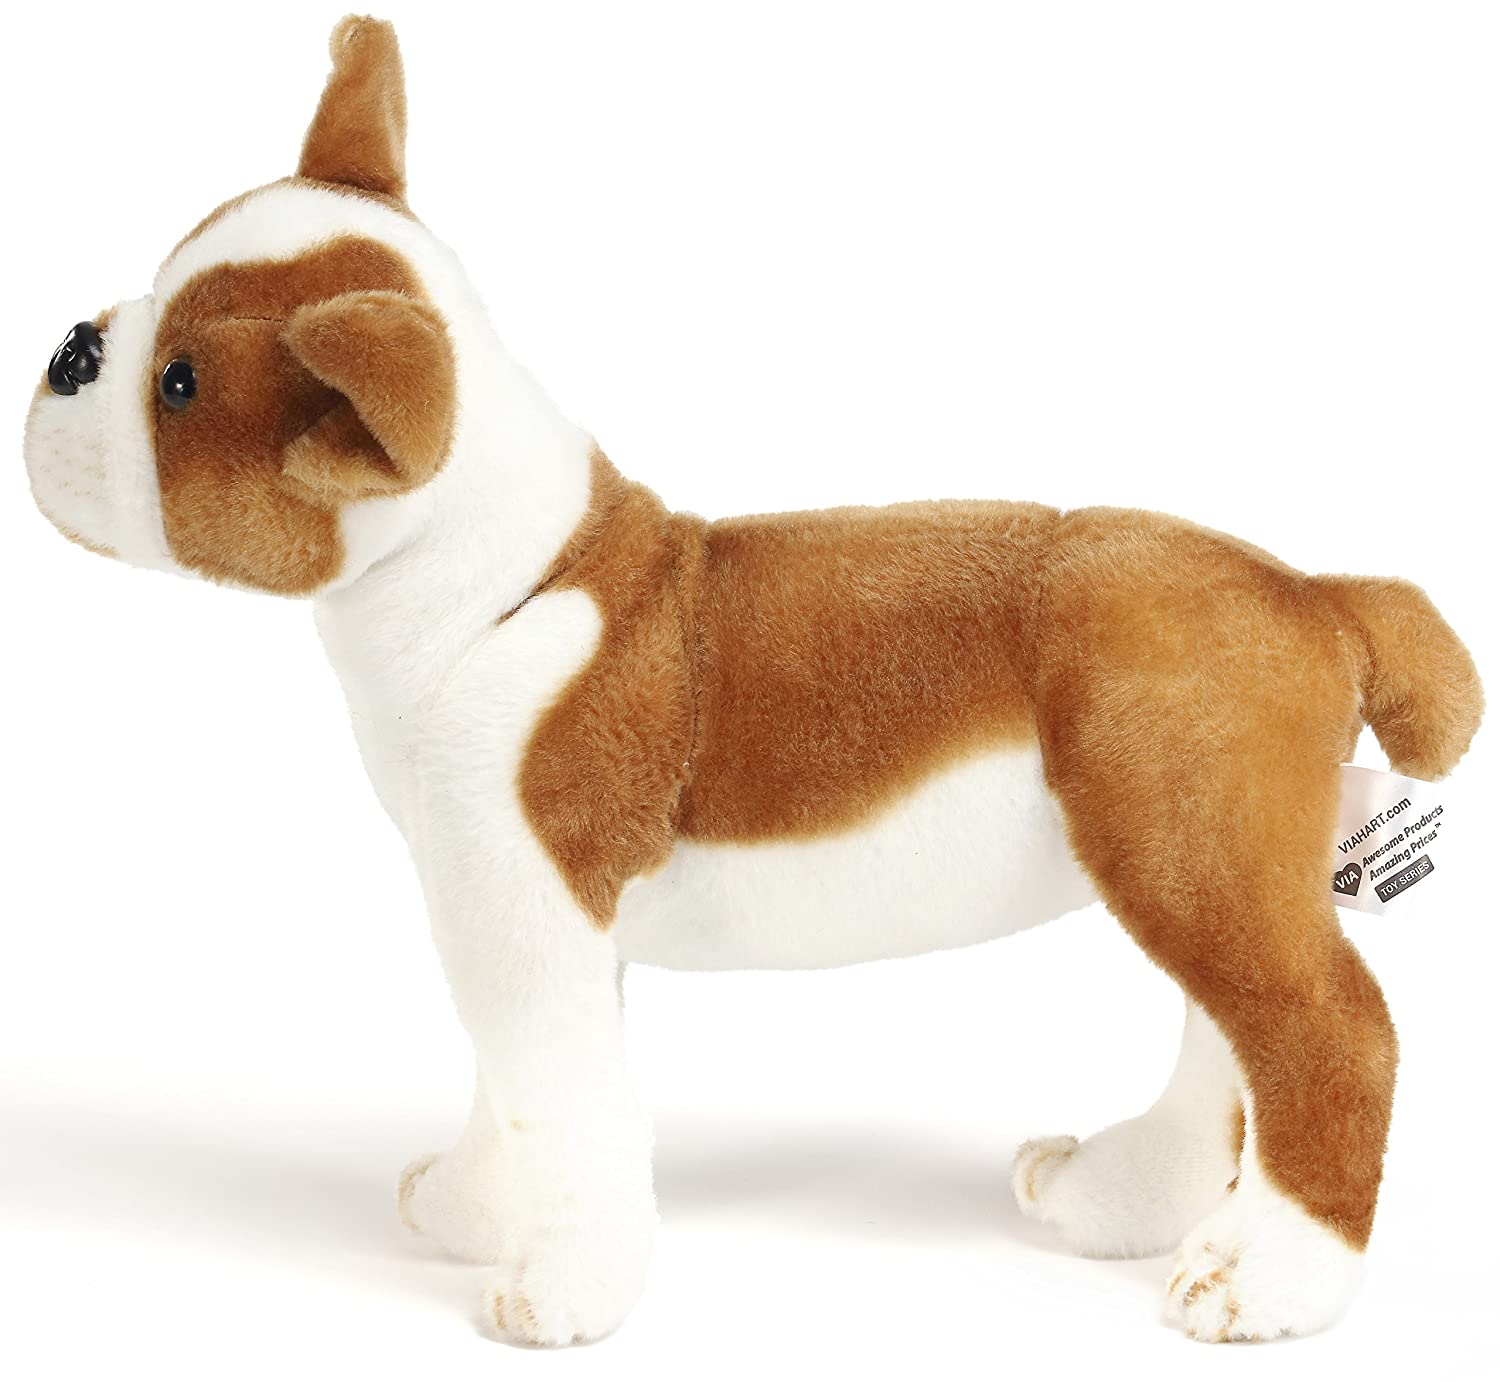 amazoncom baldric the boston terrier boxer   inch large dog  - amazoncom baldric the boston terrier boxer   inch large dog stuffedanimal plush  by tiger tale toys toys  games